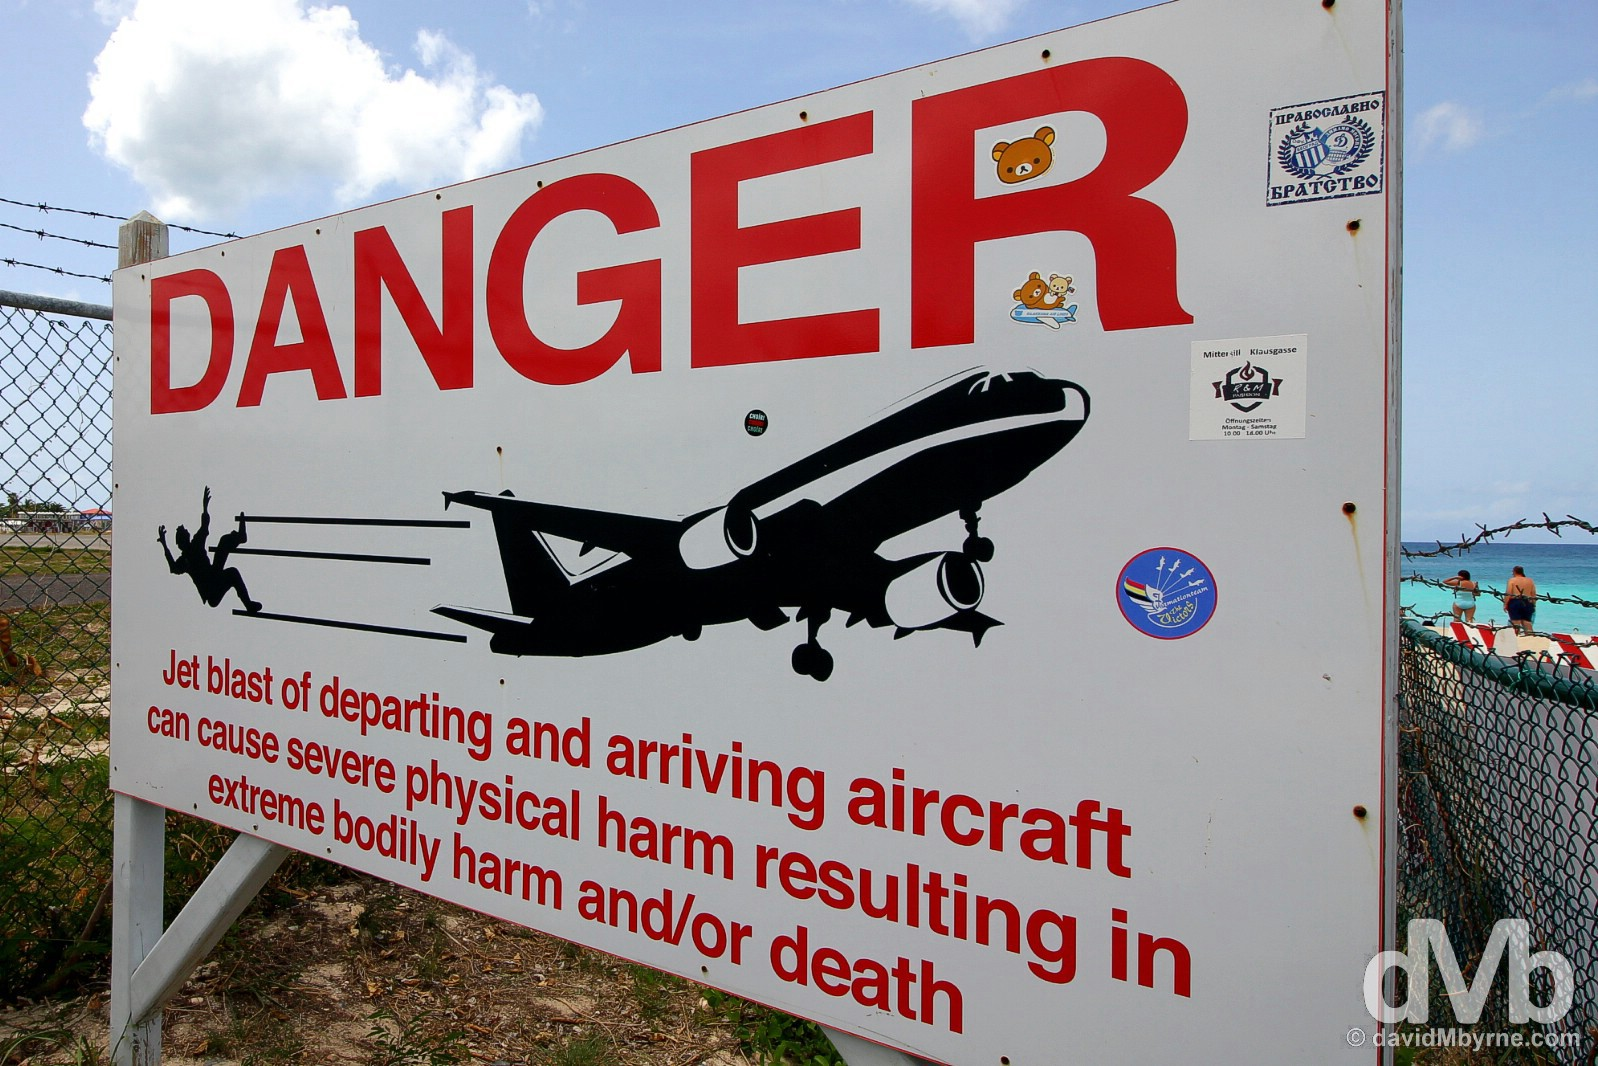 Danger. Signage at Maho Bay, Sint Maarten, Lesser Antilles. June 9, 2015.